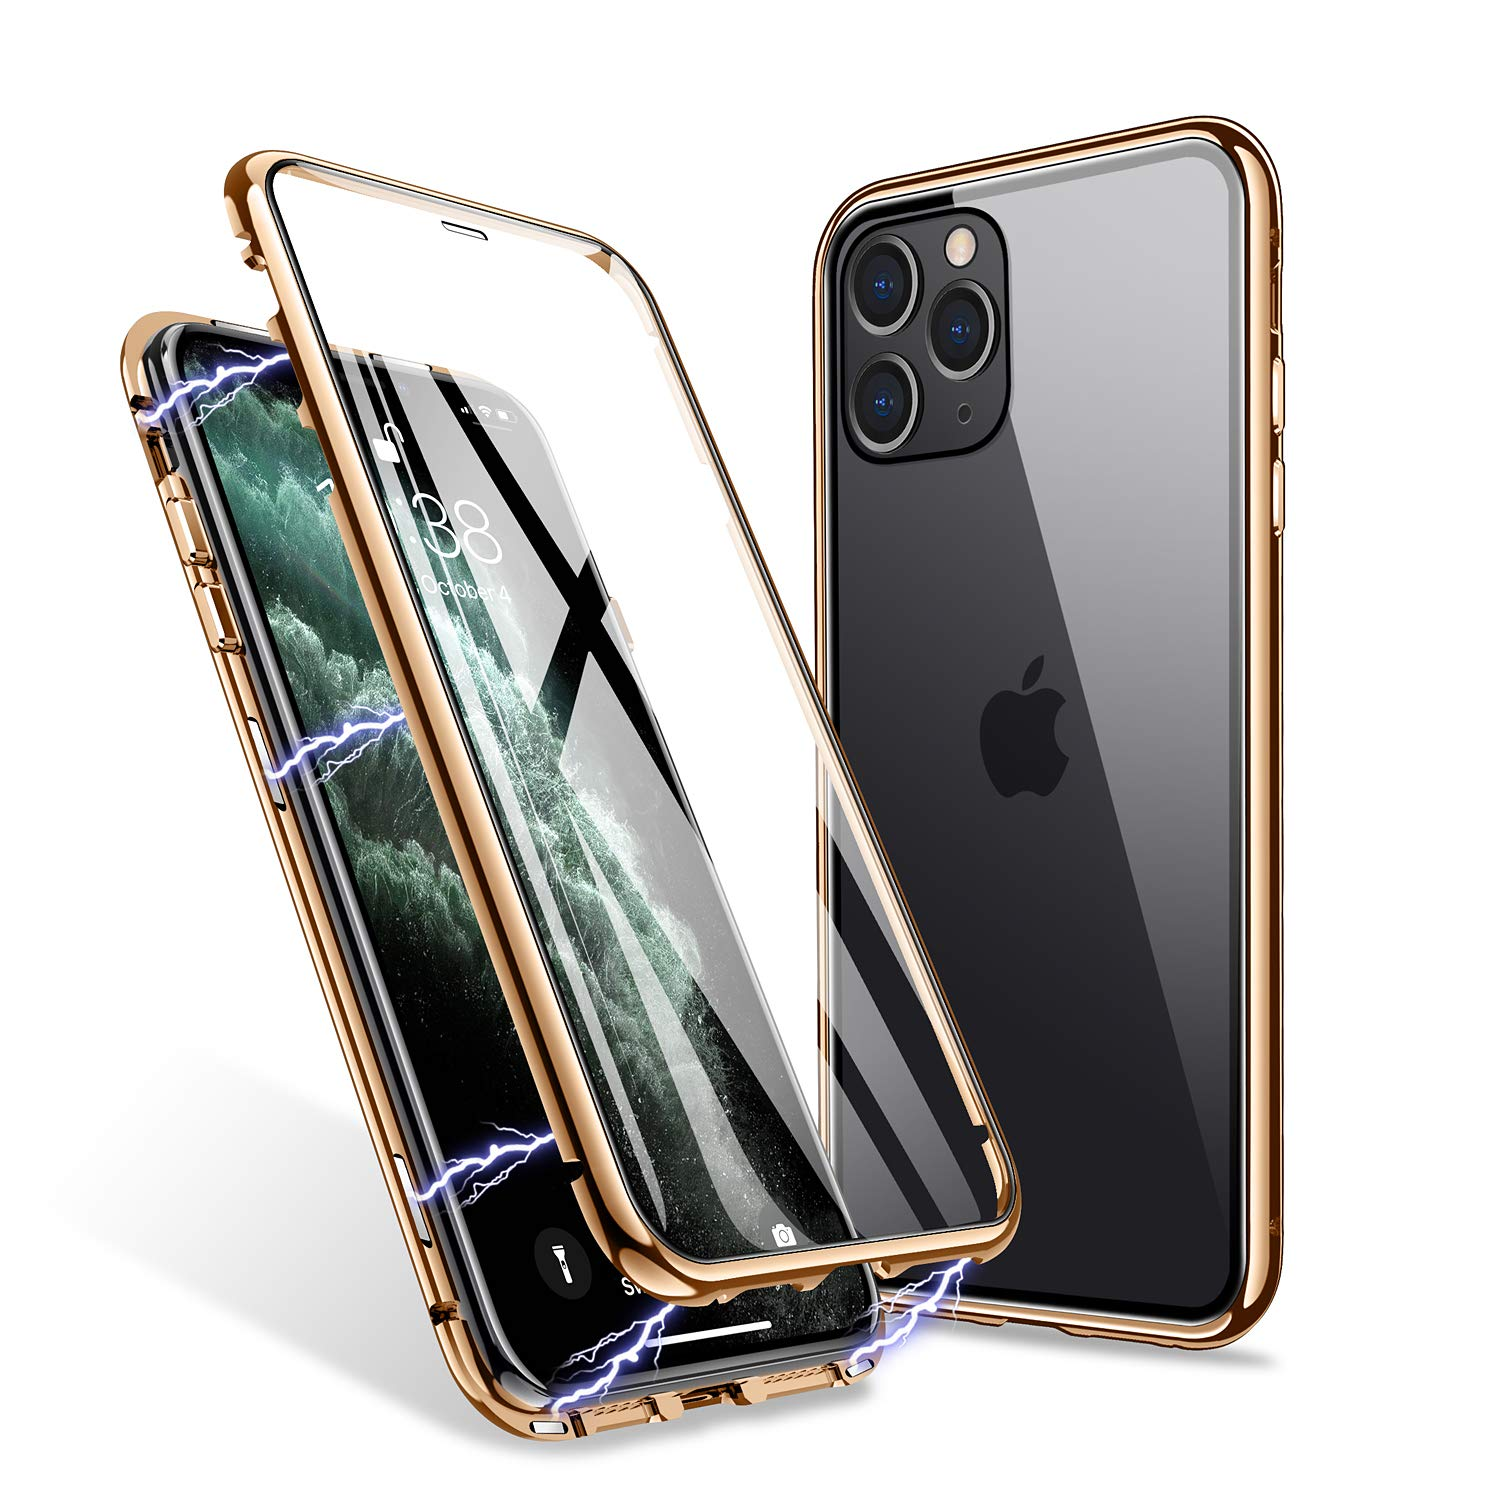 ZHIKE iPhone 11 Pro Case, Magnetic Adsorption Case Front and Back Tempered Glass Full Screen Coverage One-piece Design…